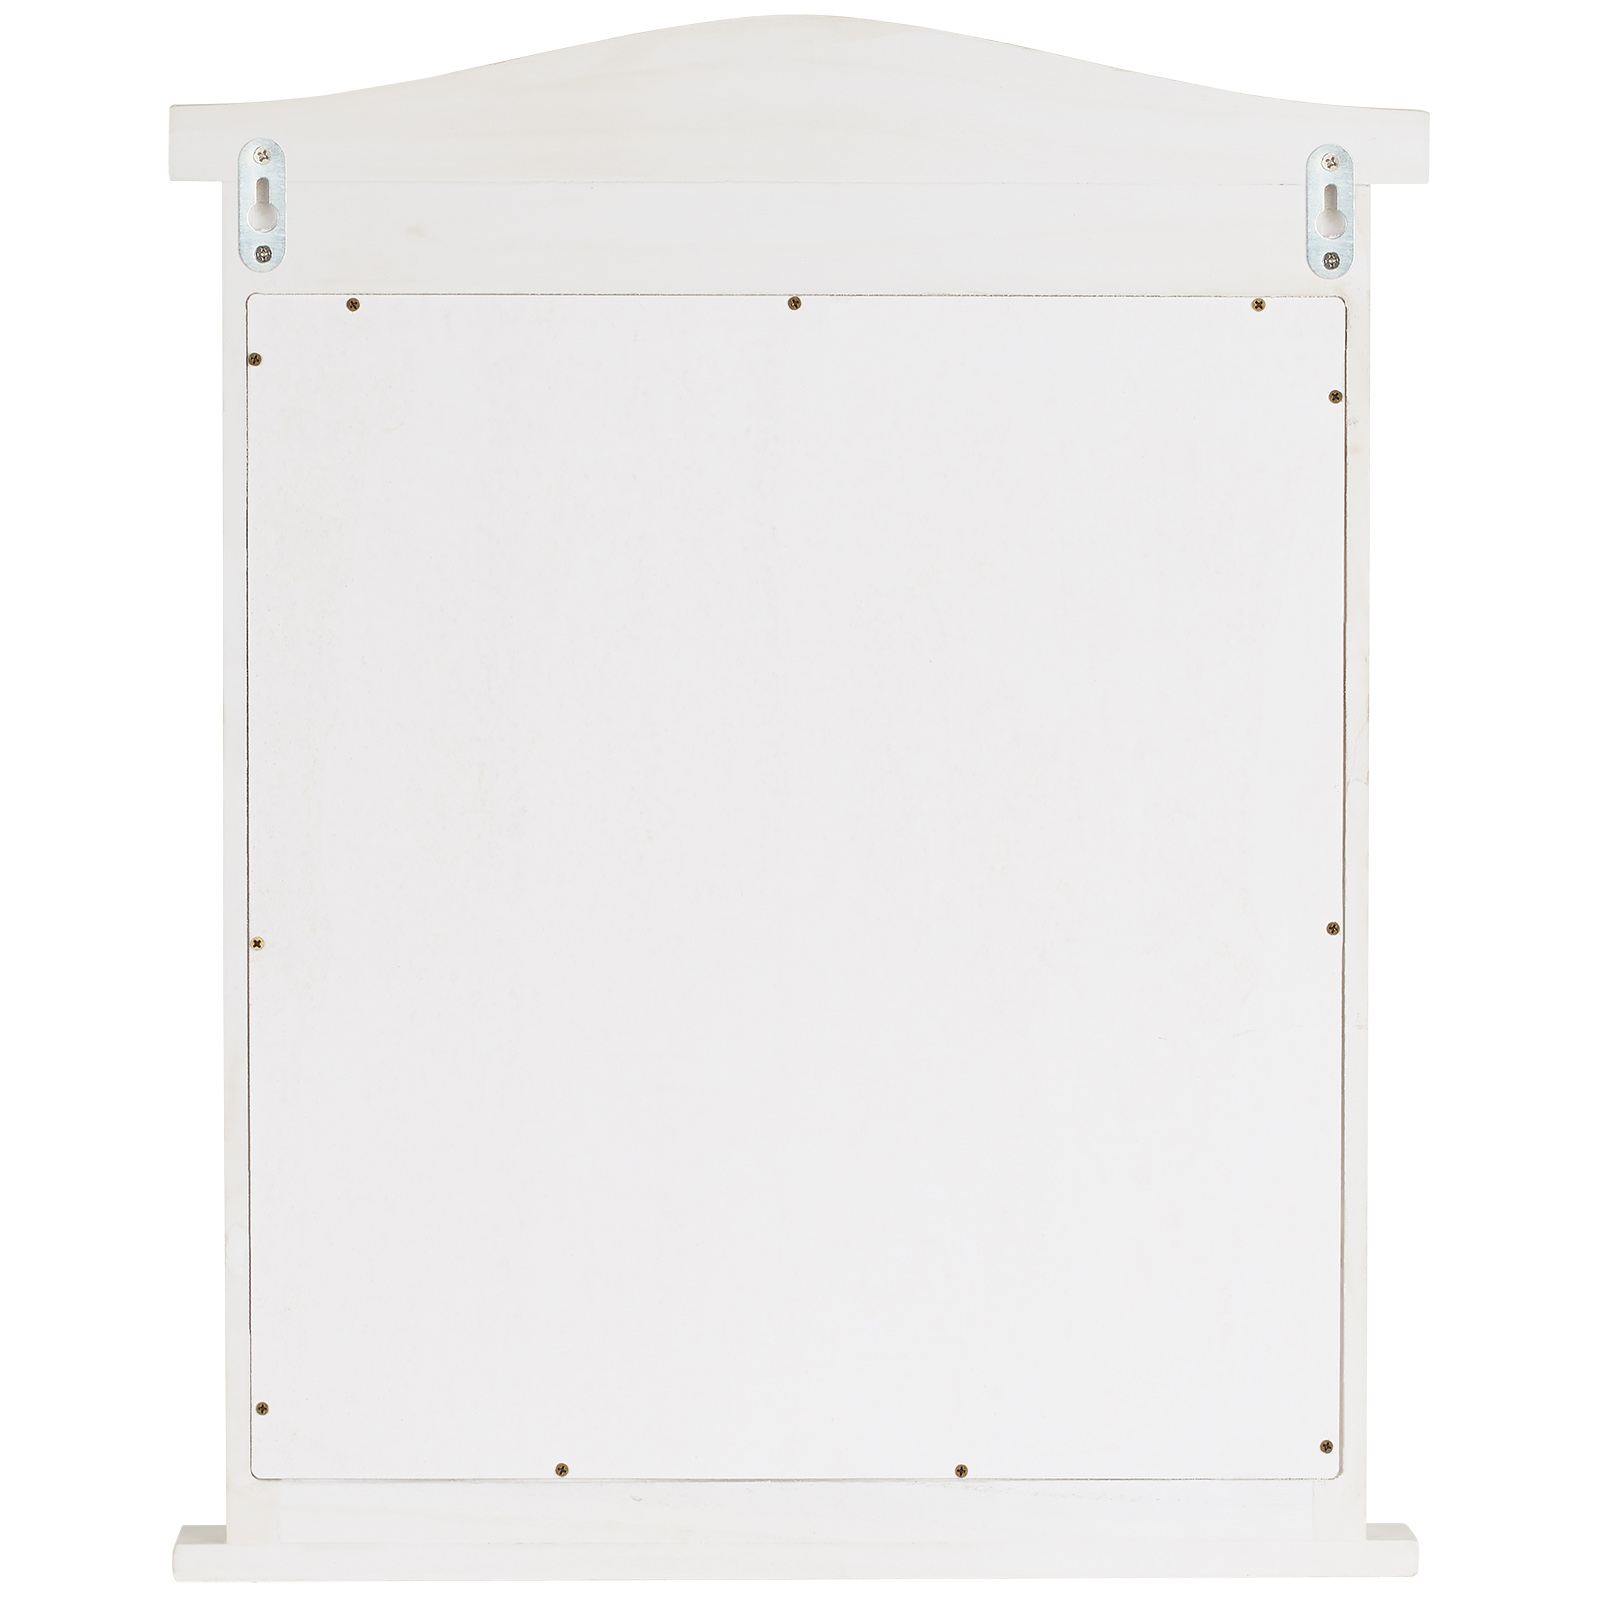 Details About Hartleys White Shabby Chic Vintage Window Shutter Mirror Bedroom Bathroom Hall